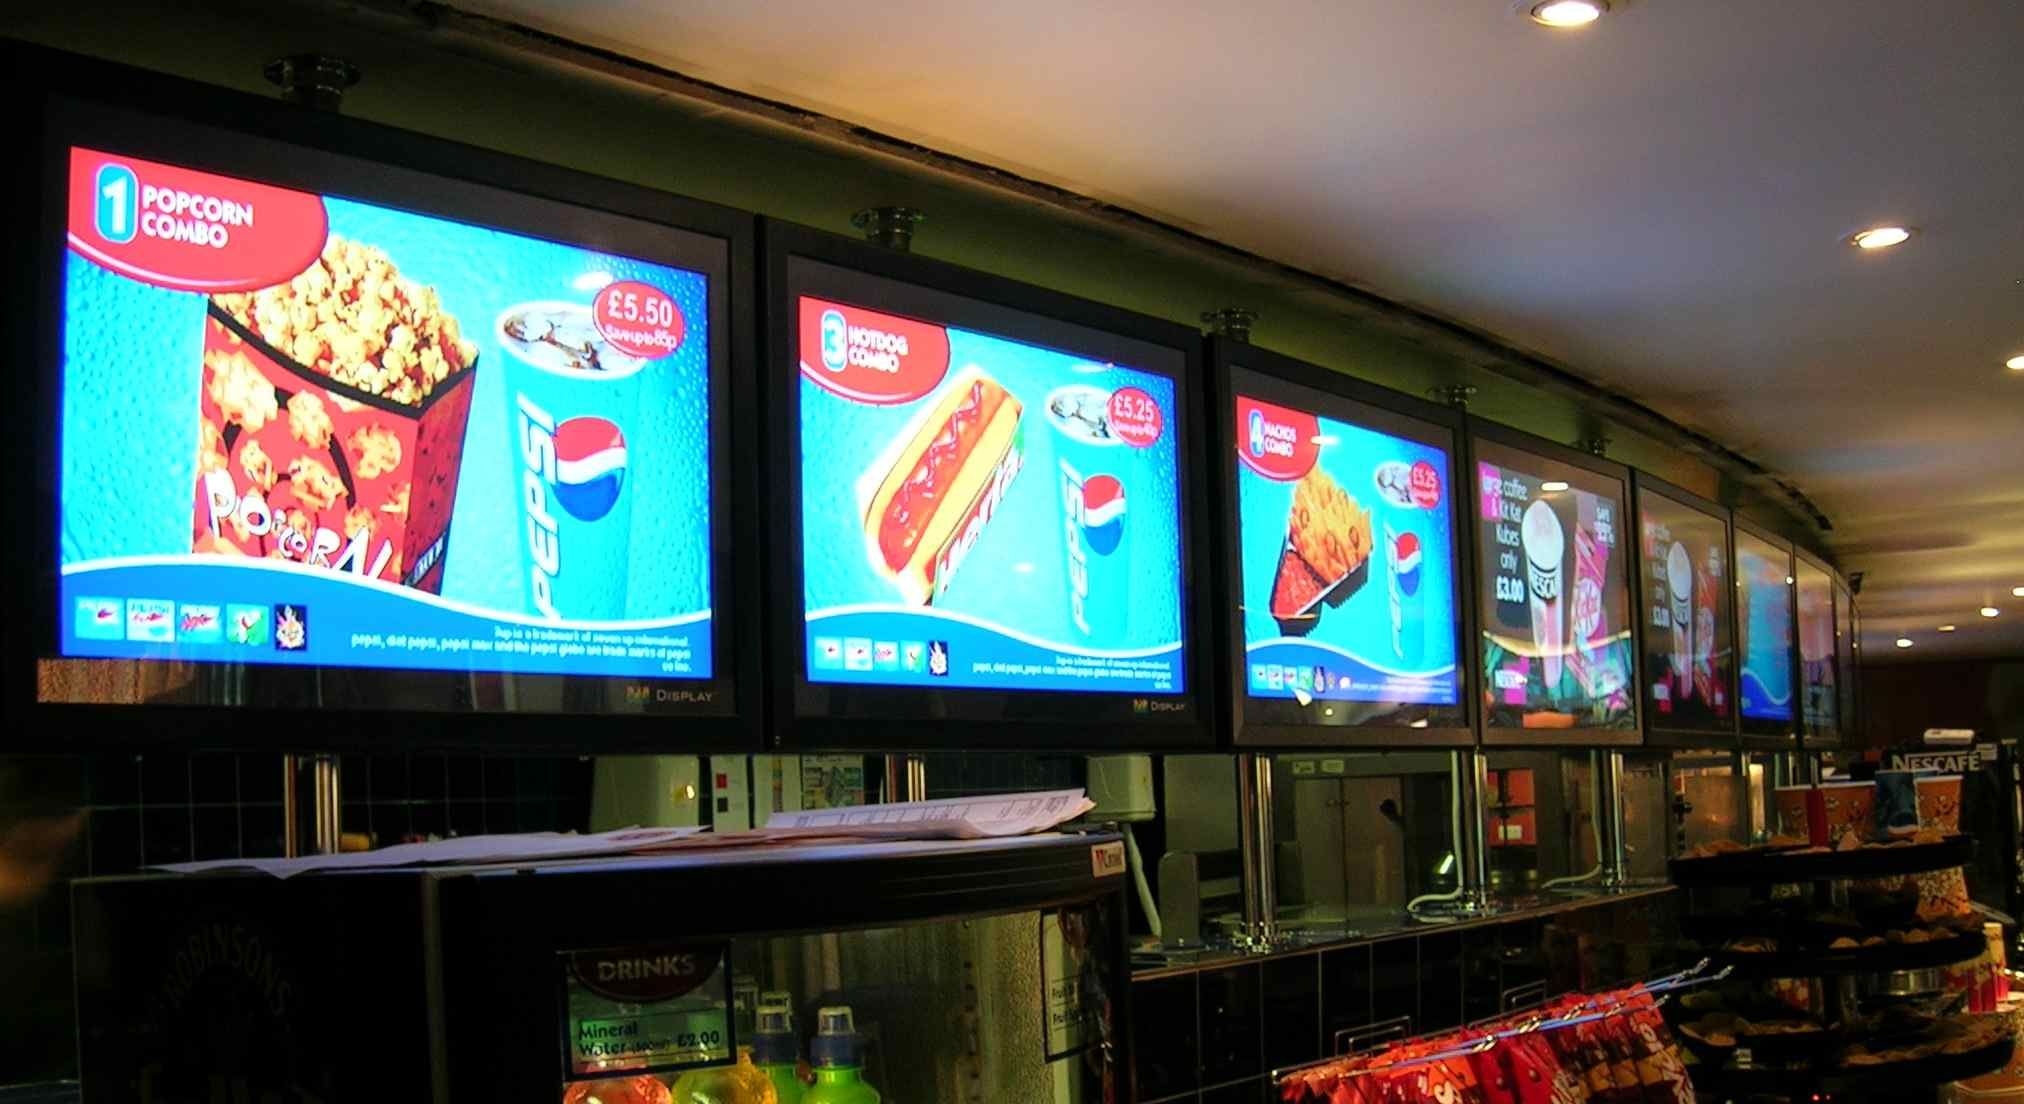 Digital Signage Solutions For The Caribbean. Old Movie Theatre Signs Of Stroke. Aware Signs. Cha2ds2 Vasc Signs. Number 12 Signs Of Stroke. Game Throne Signs Of Stroke. Golf Course Signs. Delirium Signs. Signage Signs